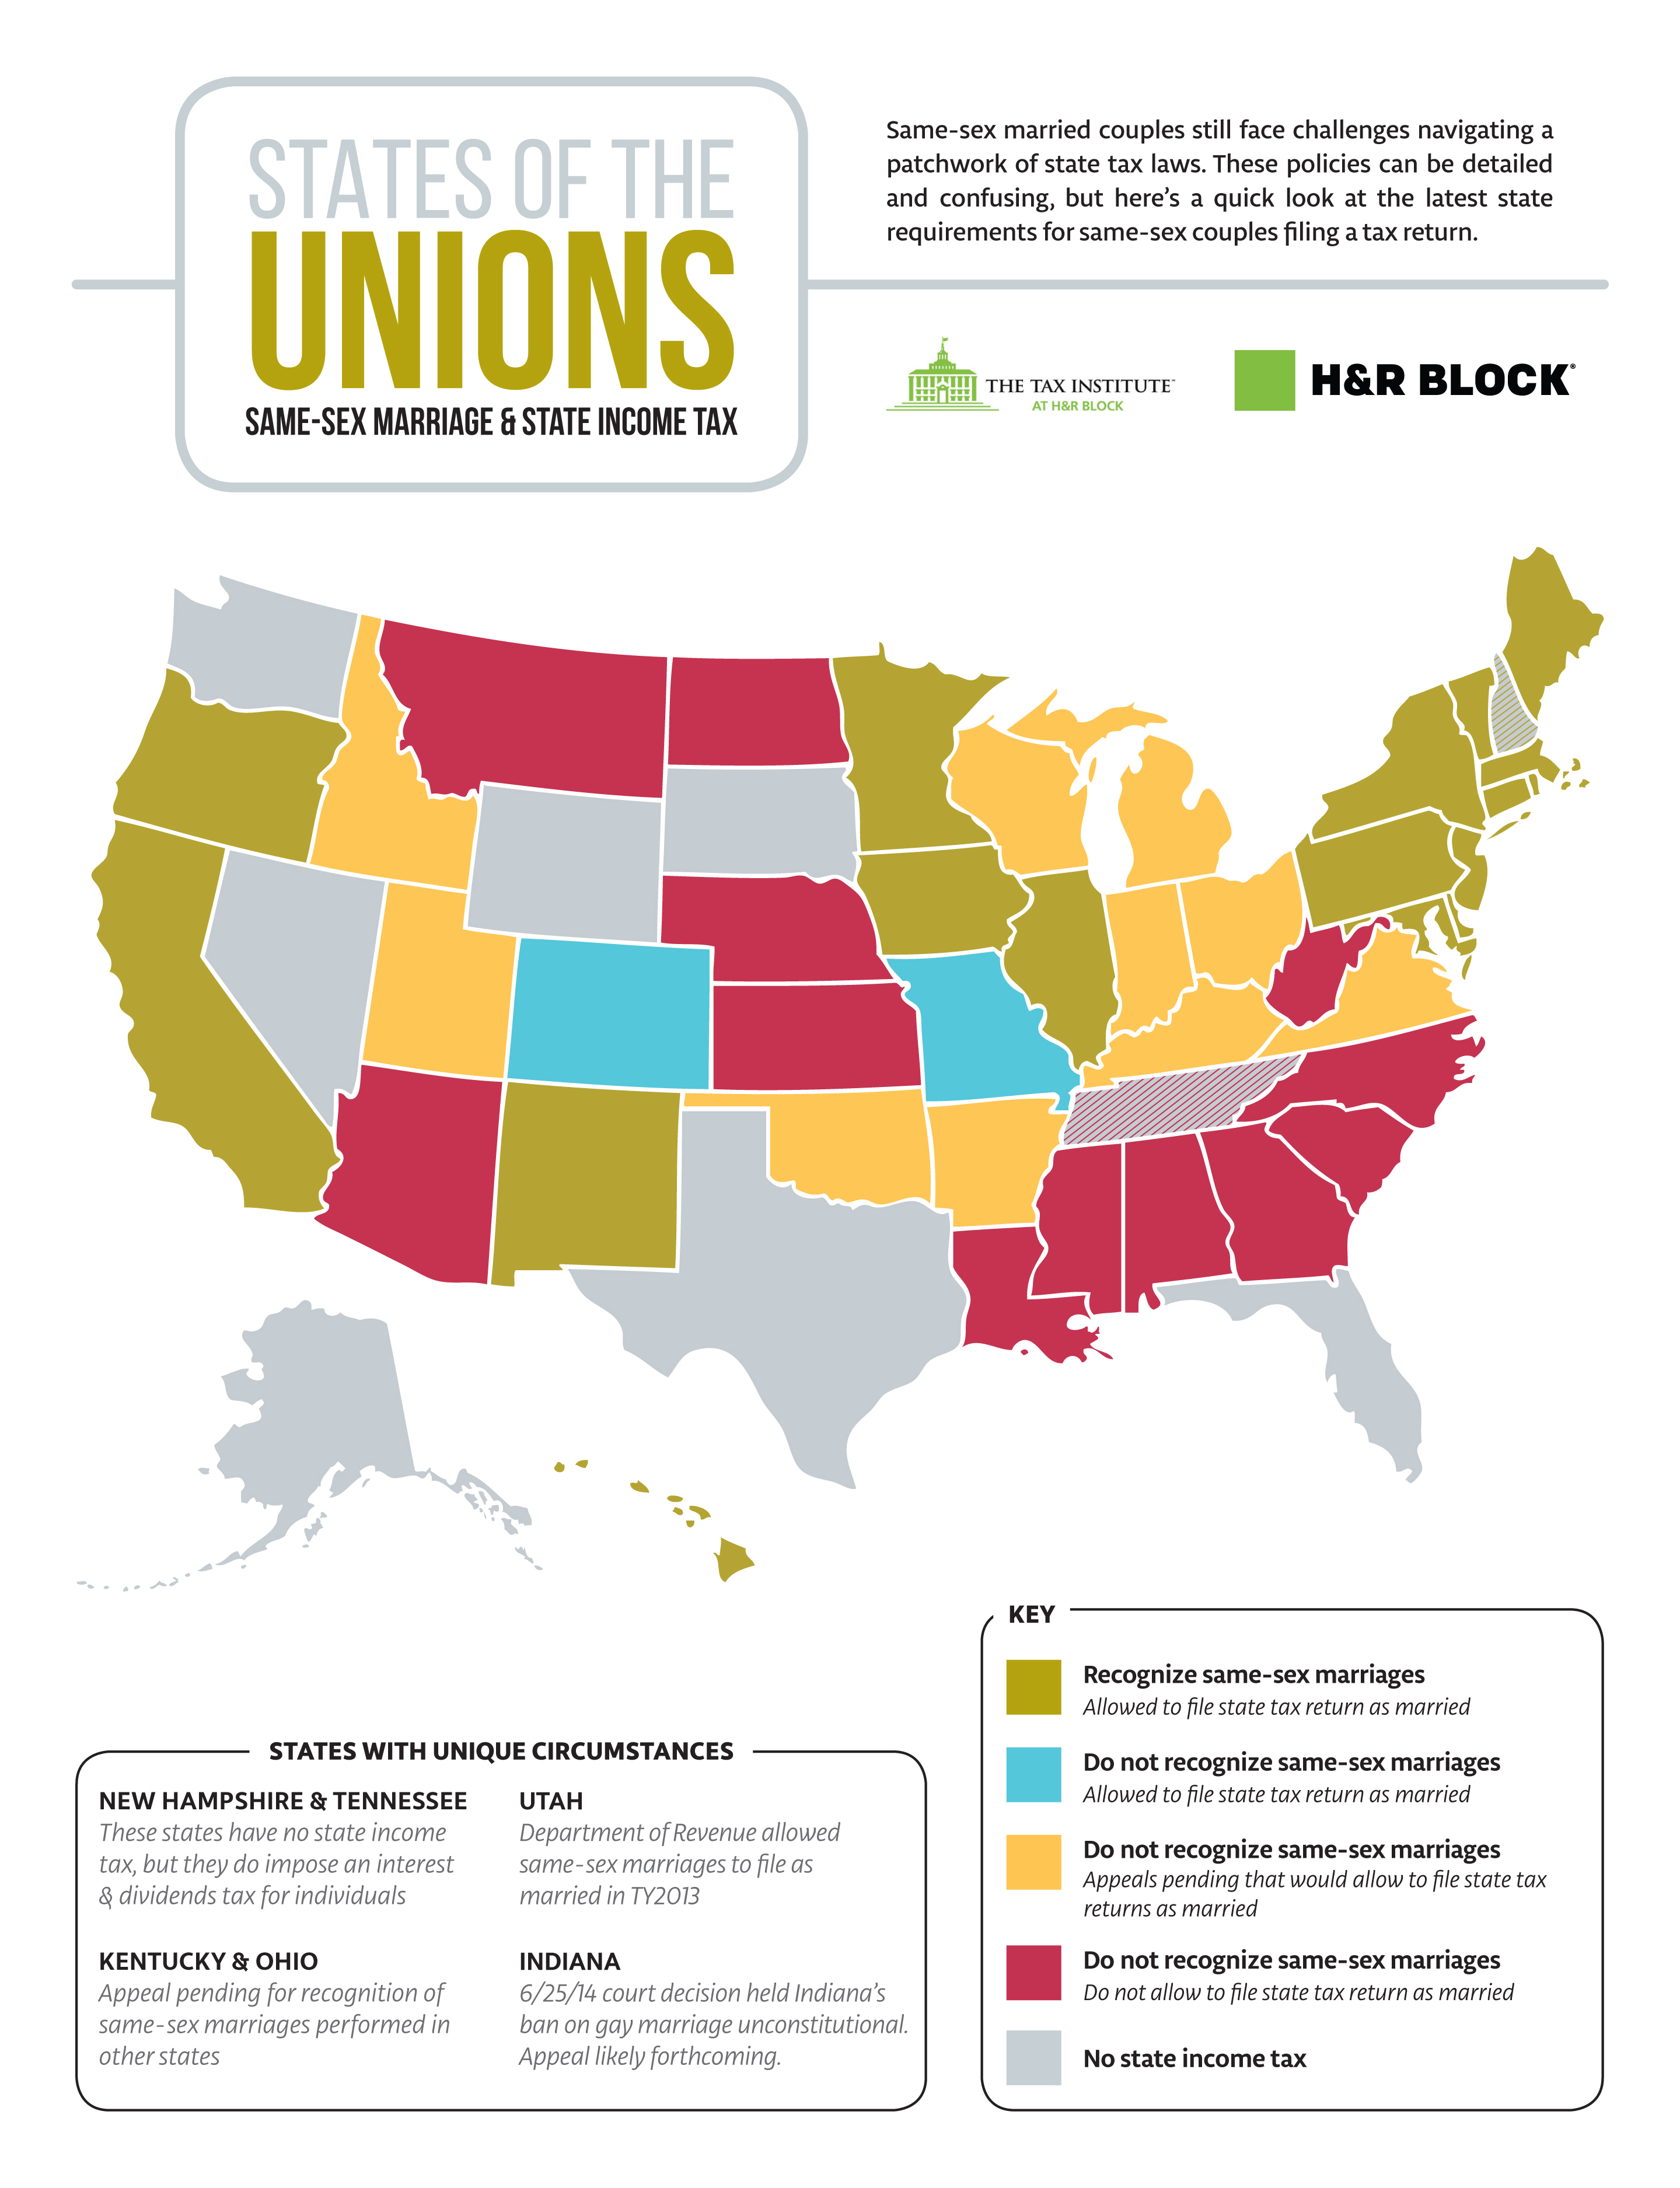 State laws for same-sex marriage